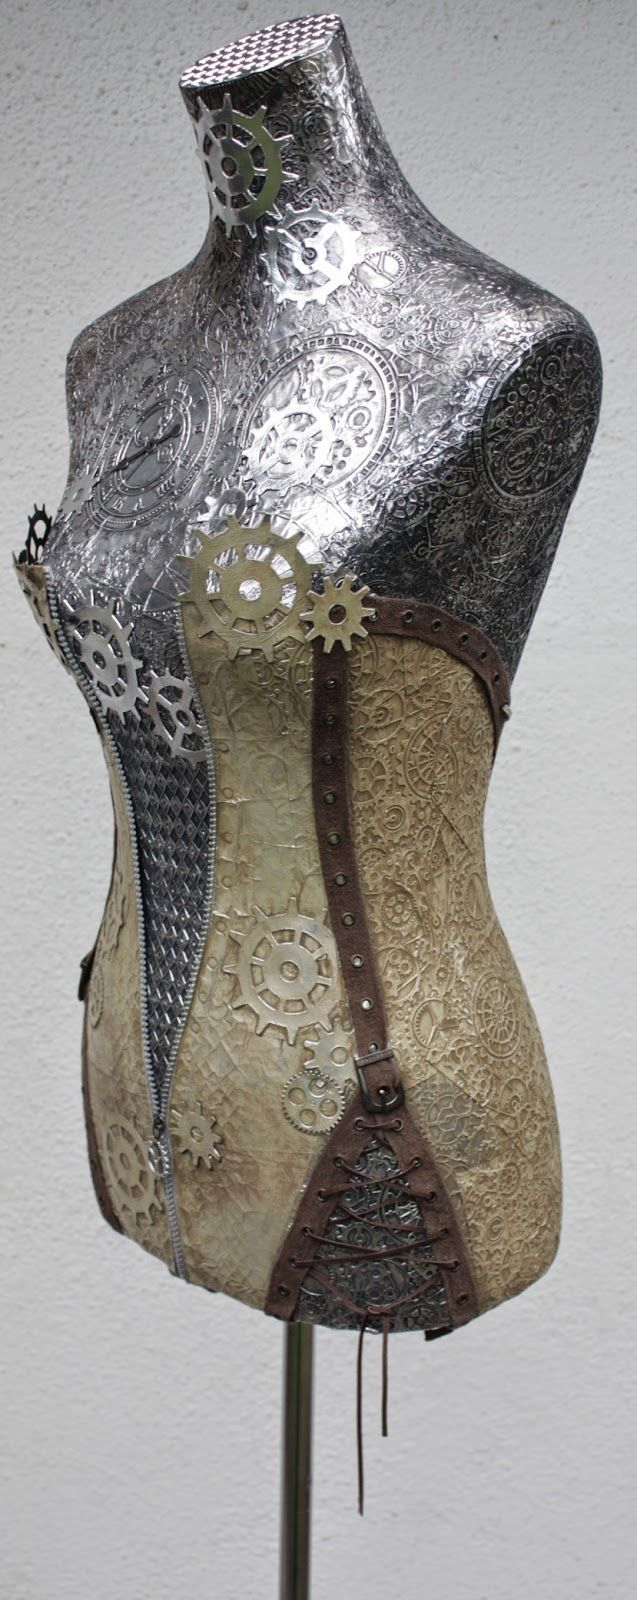 - Steampunk Dress Form by Belinda Basson